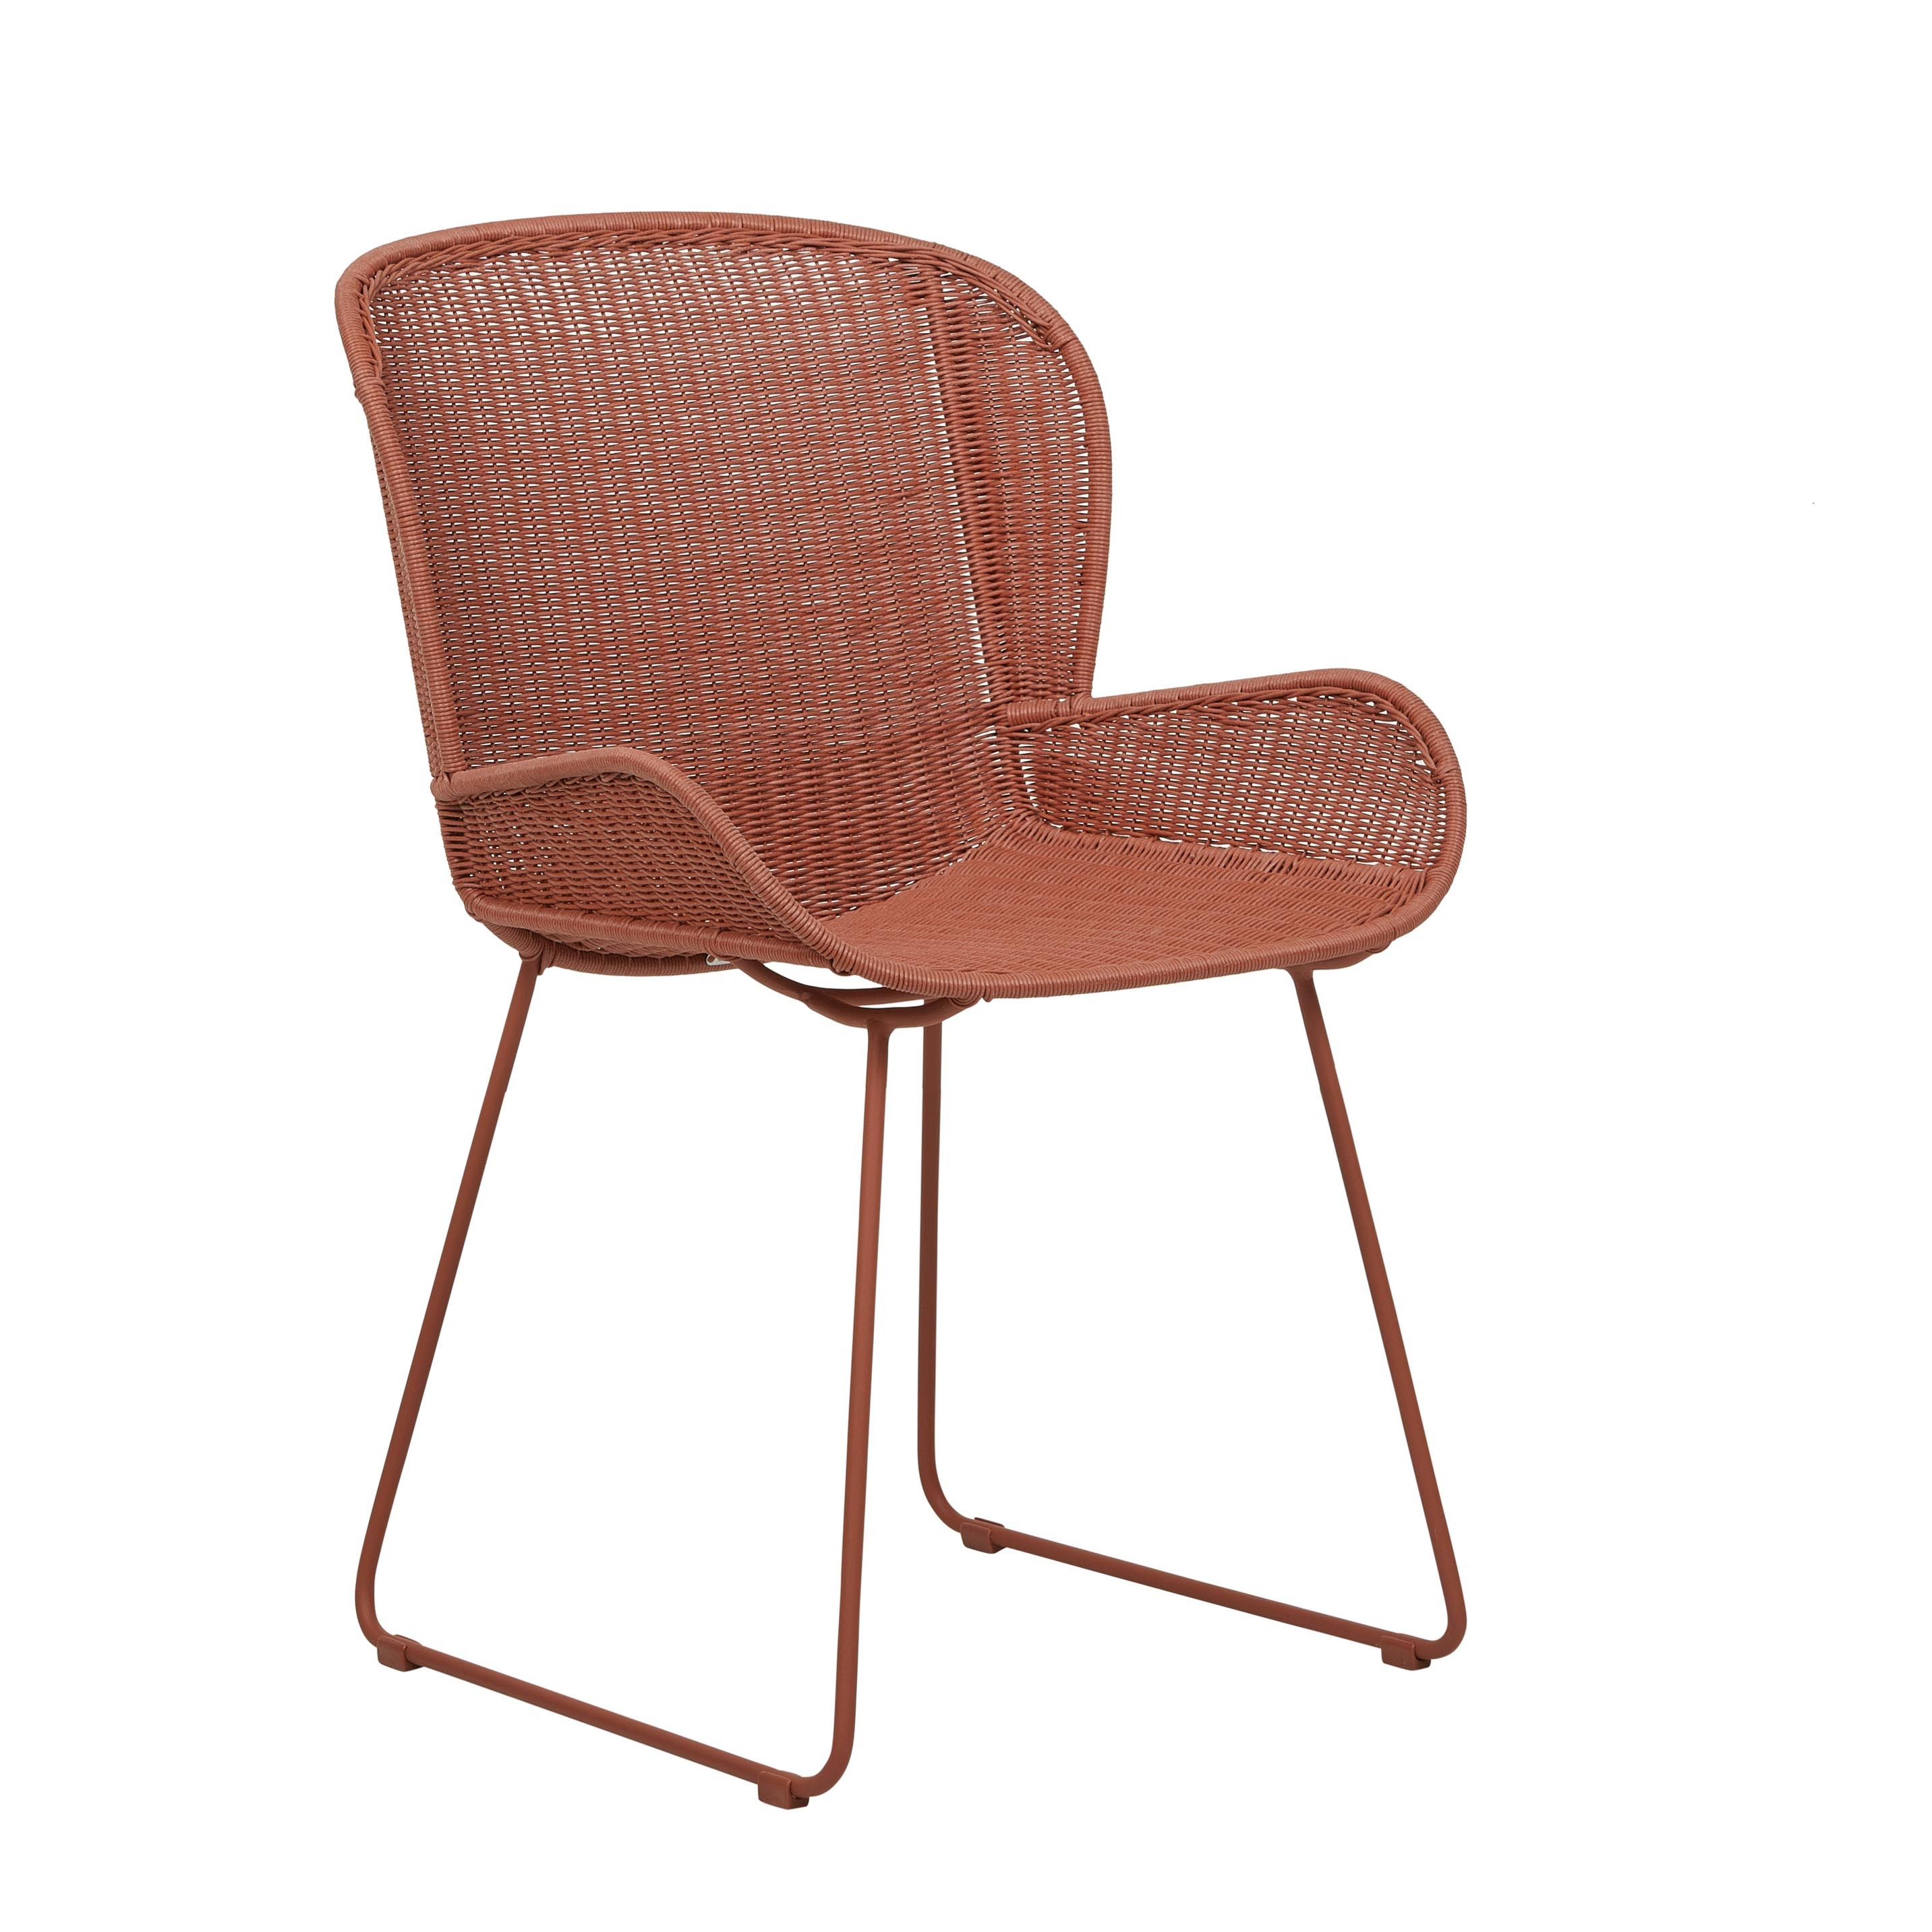 Furniture Hero-Images Dining-Chairs-Benches-and-Stools granada-butterfly-closed-weave-04